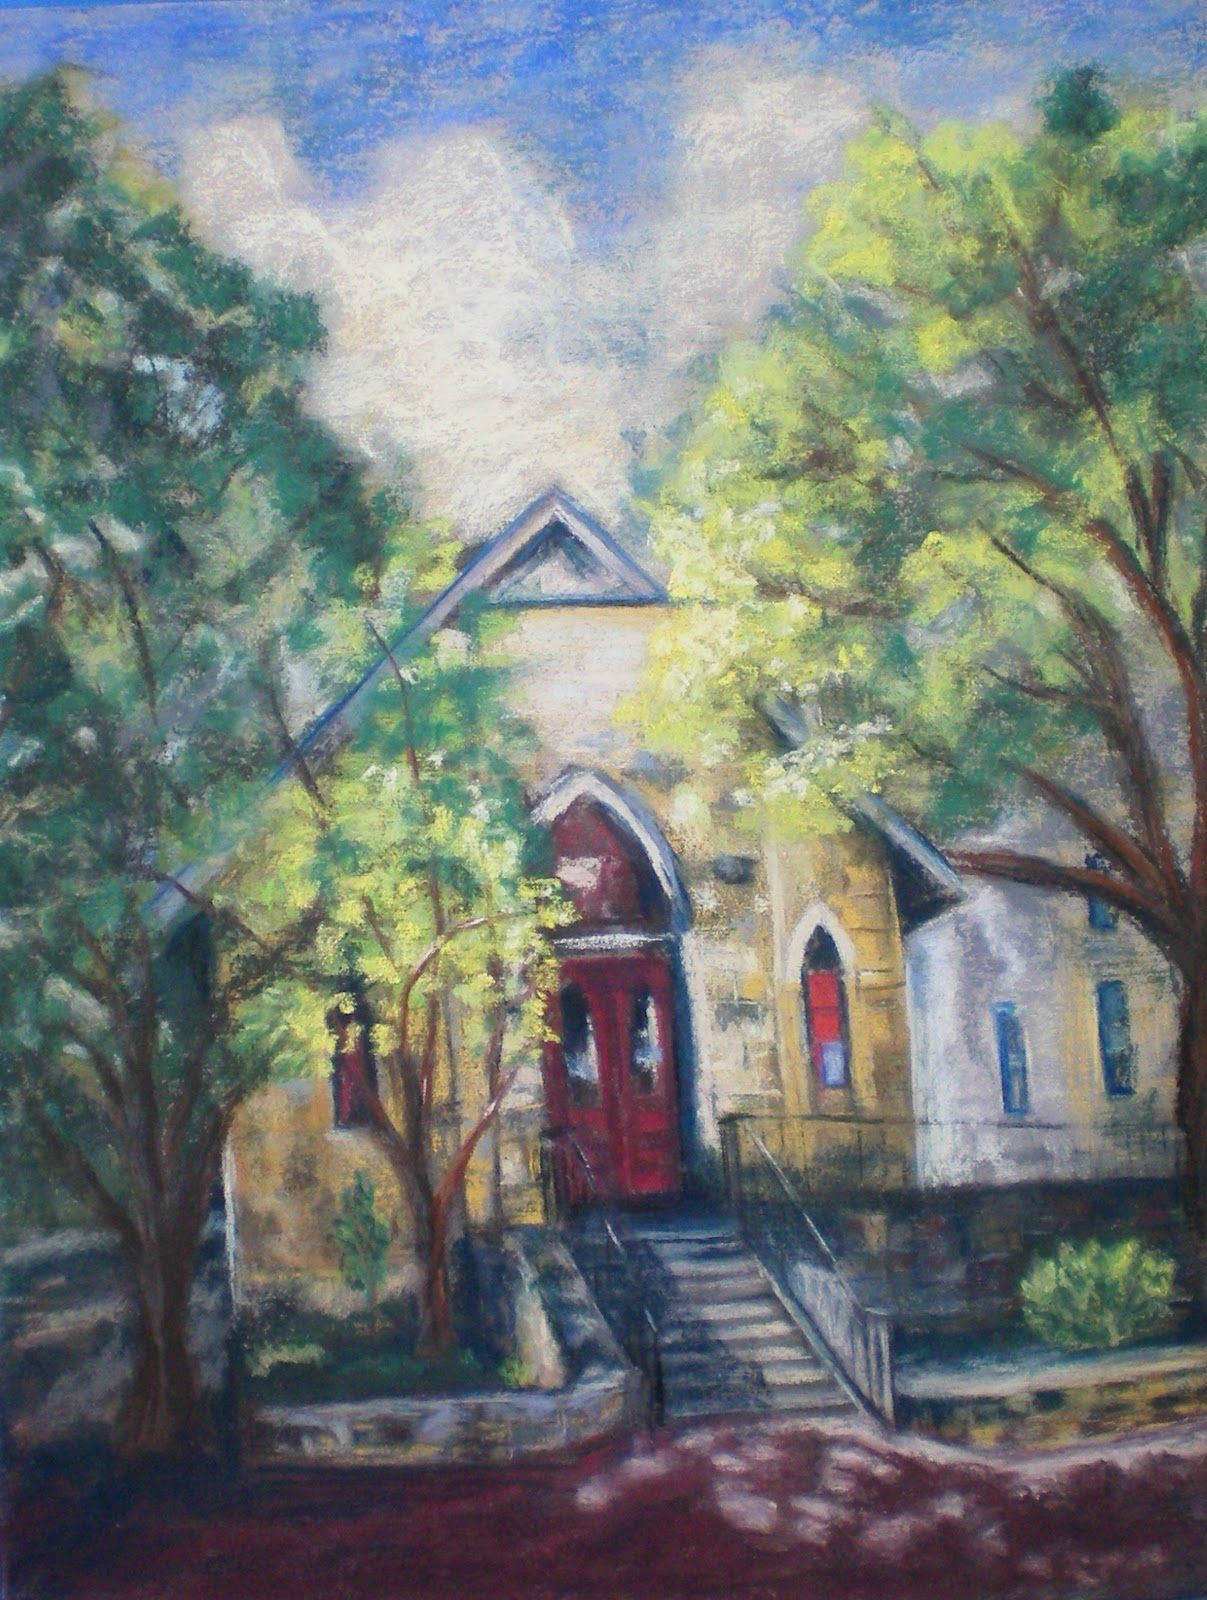 Boerne Community Theatre Art Showing Pin by